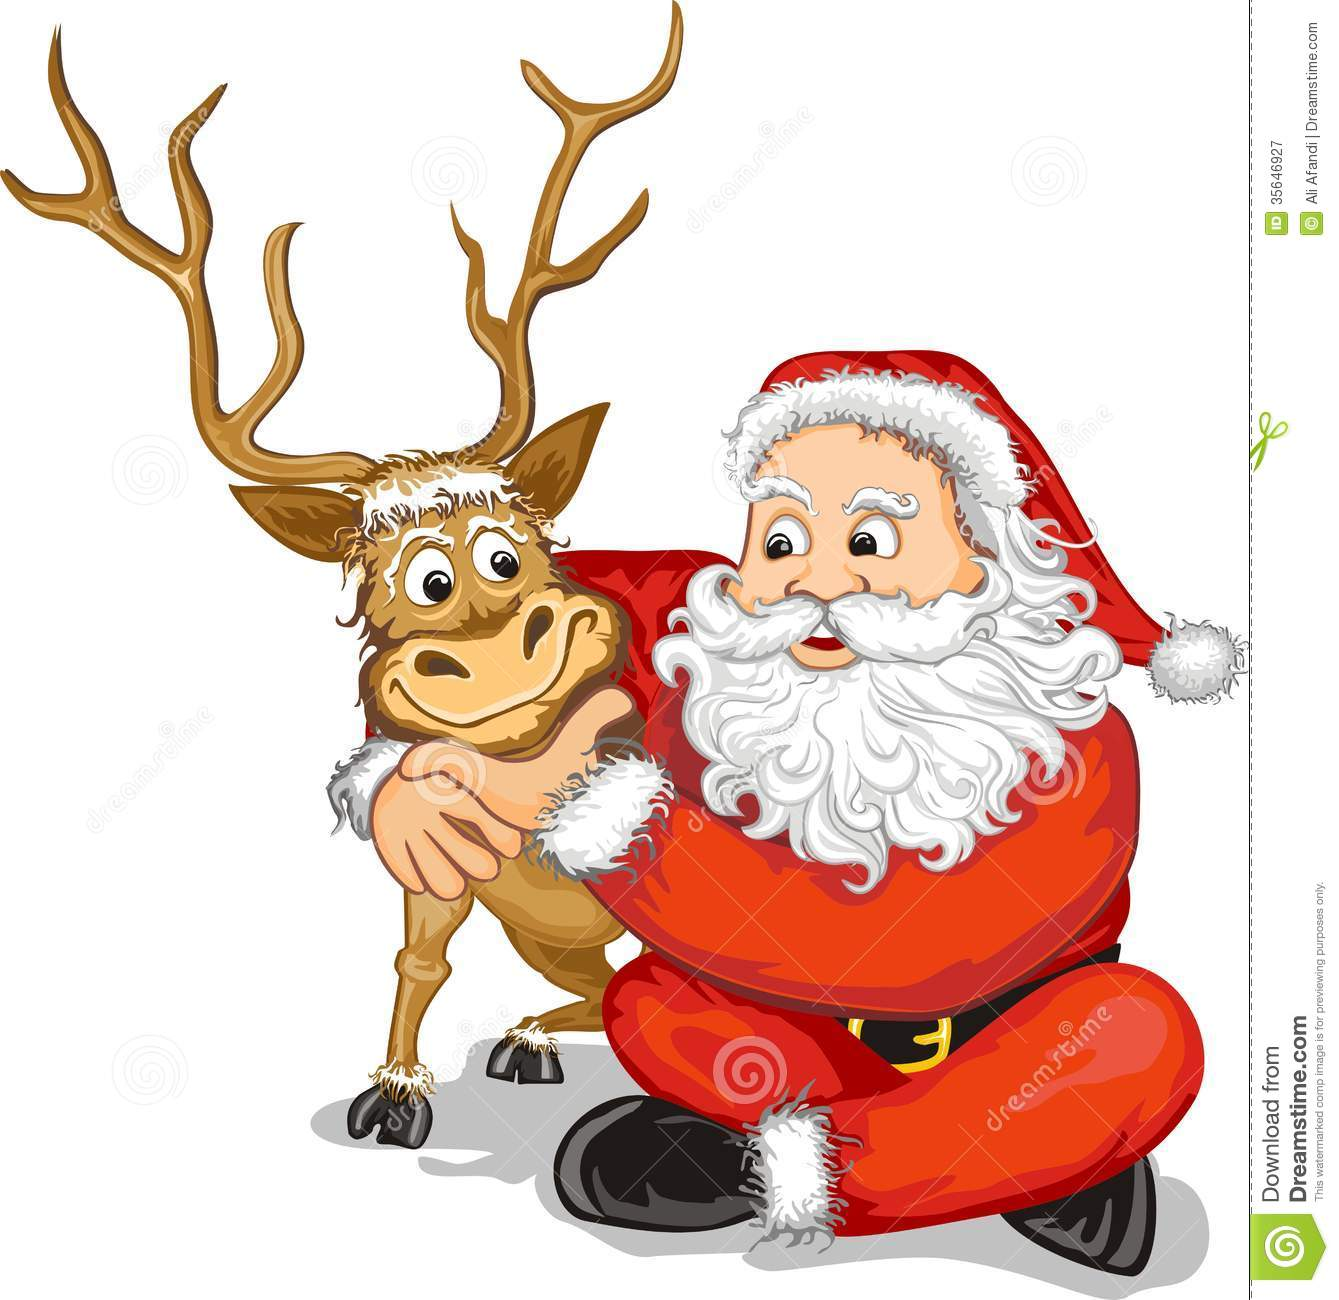 Santa claus and reindeer stock vector illustration of